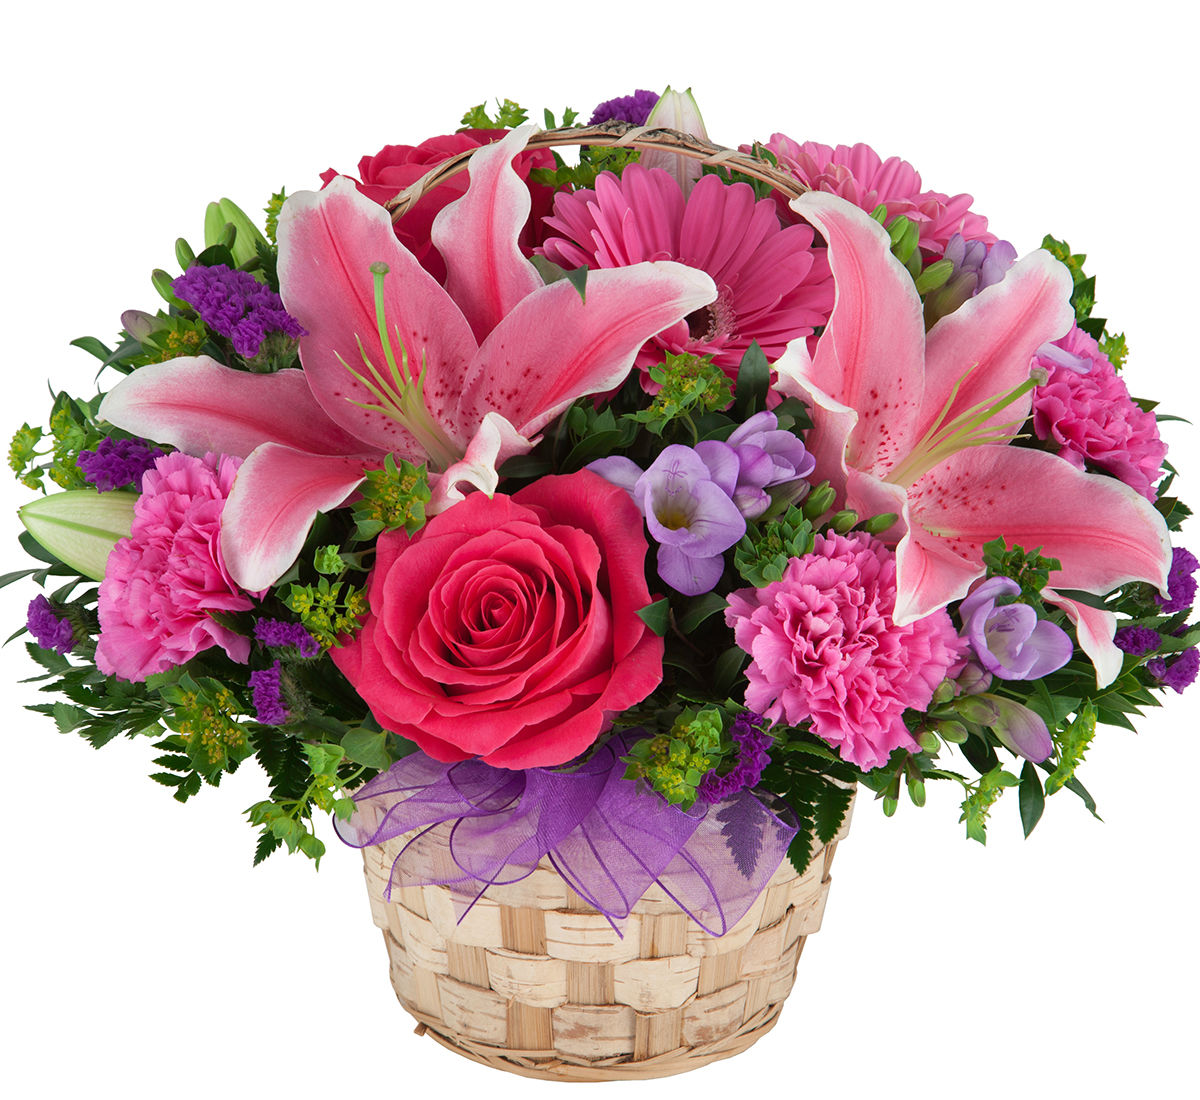 mother's day flower basket · mother's day flowers · canada flowers.ca, Beautiful flower